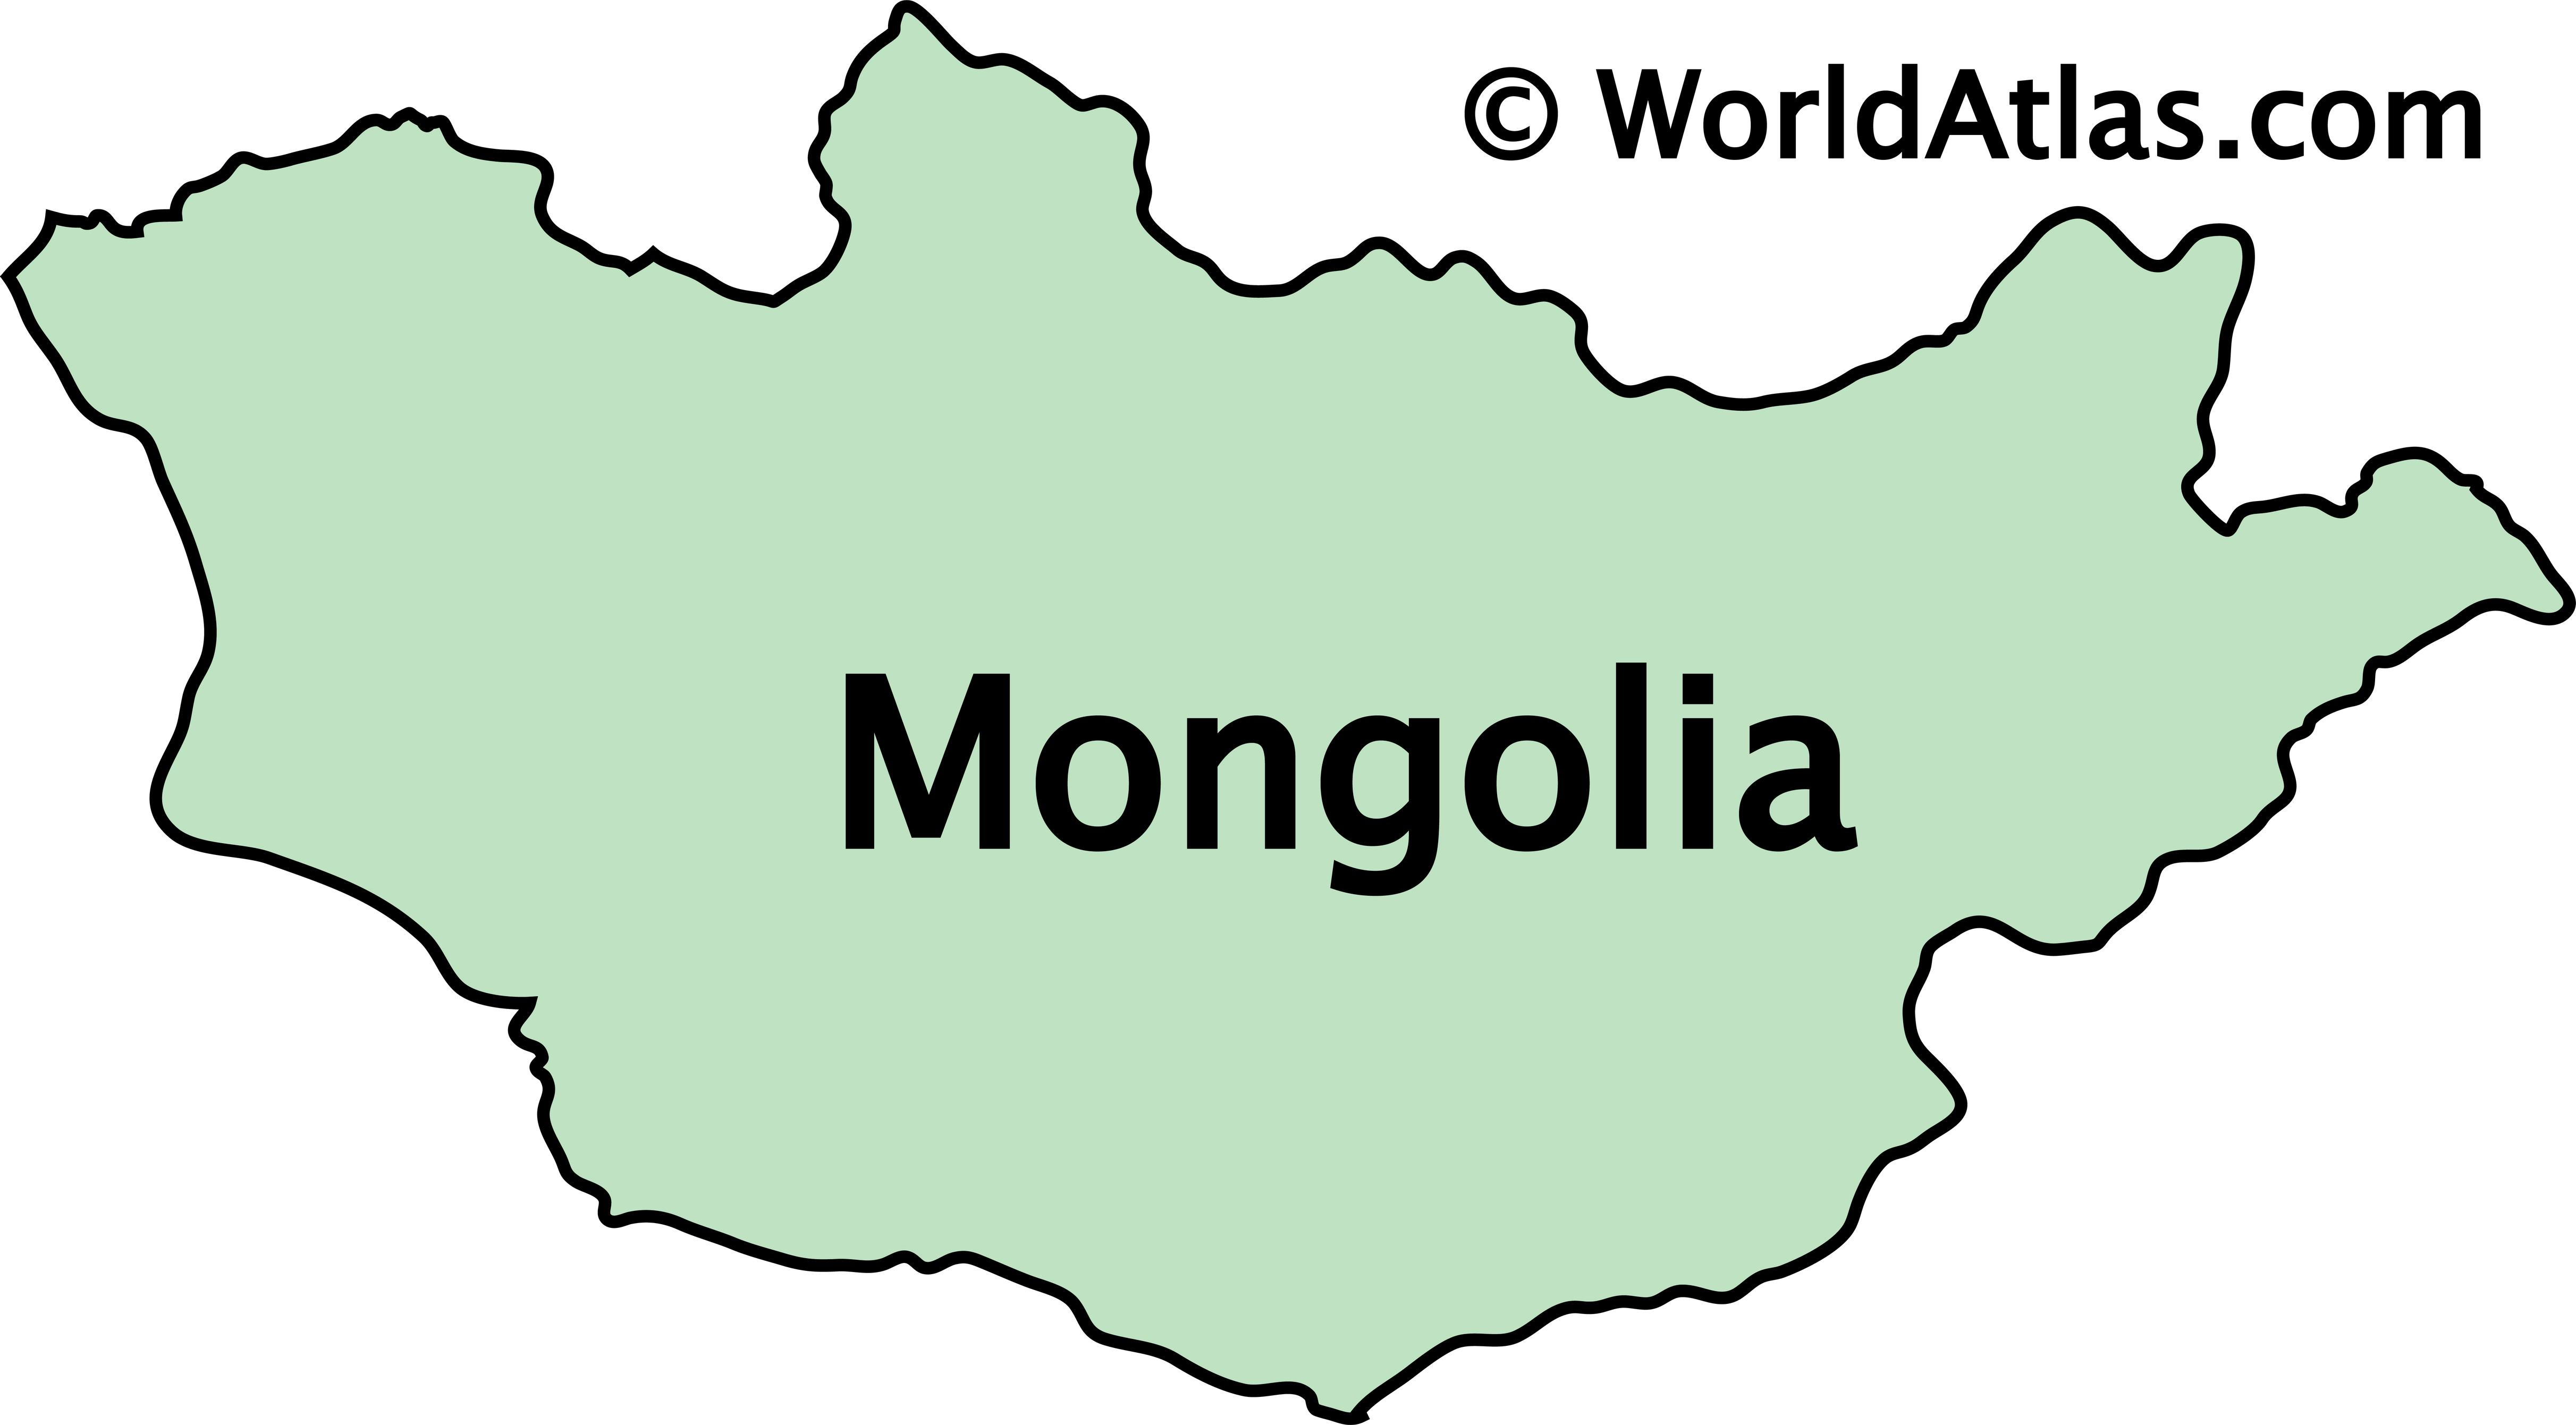 Outline Map of Mongolia